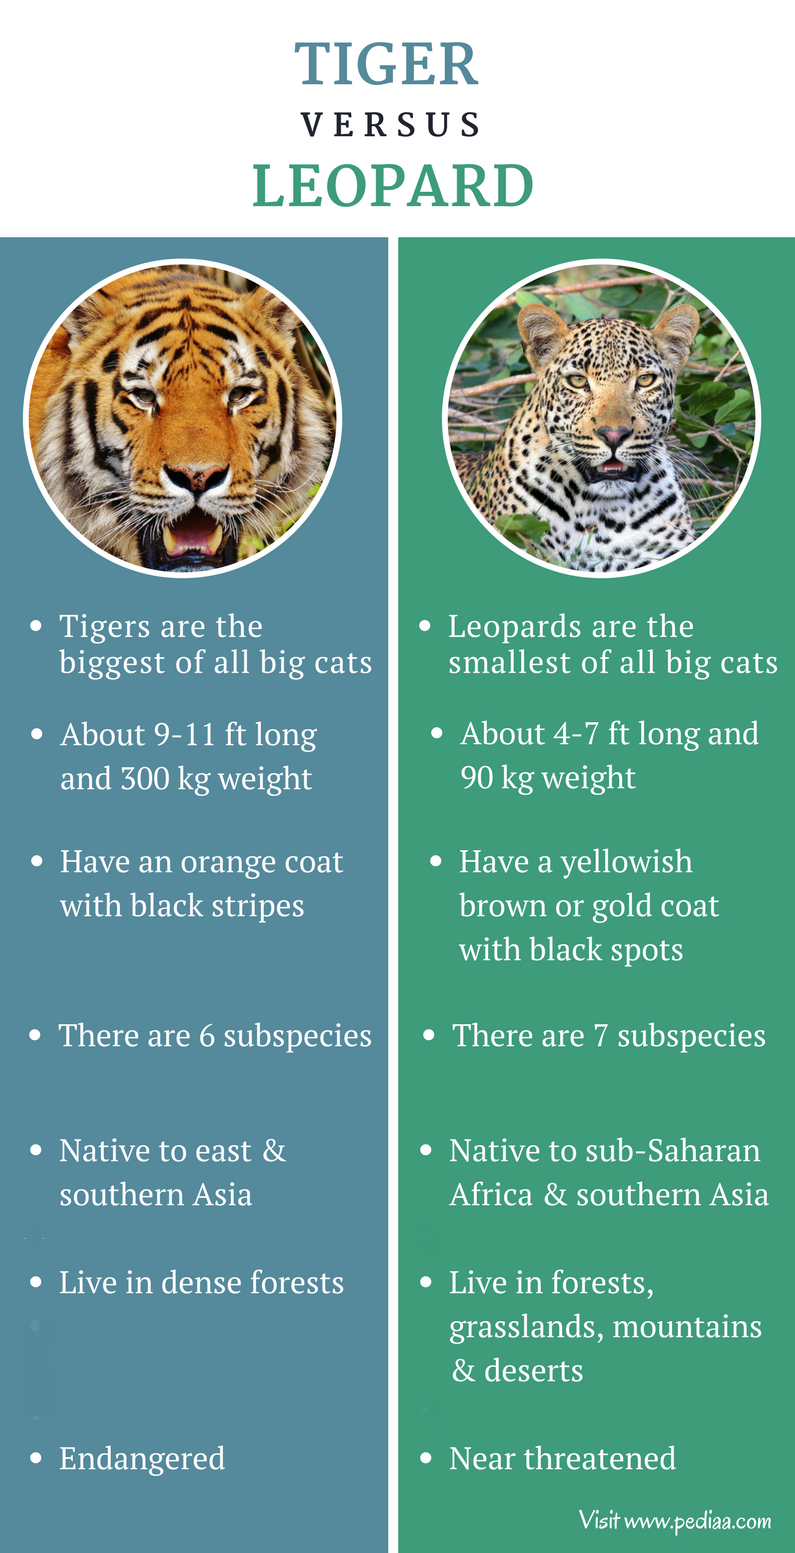 Difference between Tiger and Leopard - Comparison Summary